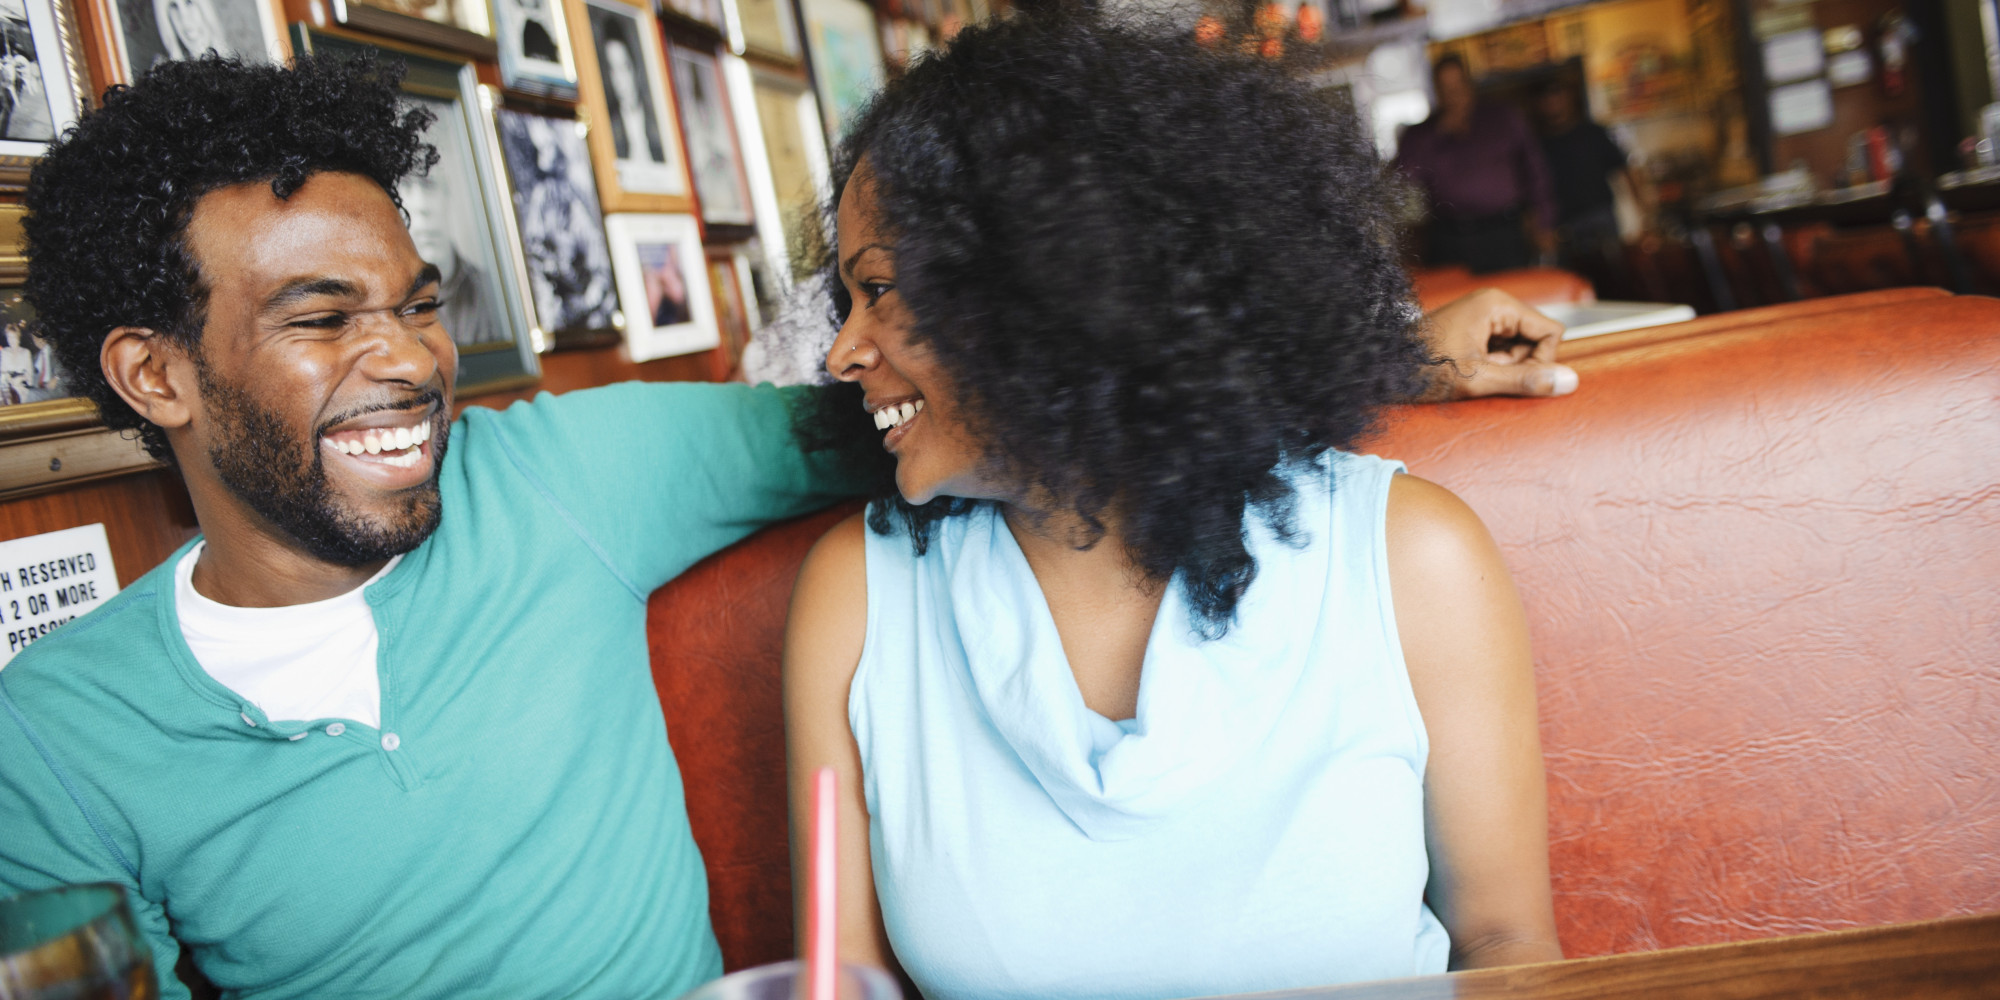 quilpue black girls personals When it comes to black women dating sites, matchcom is a leader in making  connections sign up today to begin browsing profiles and find potential dates.